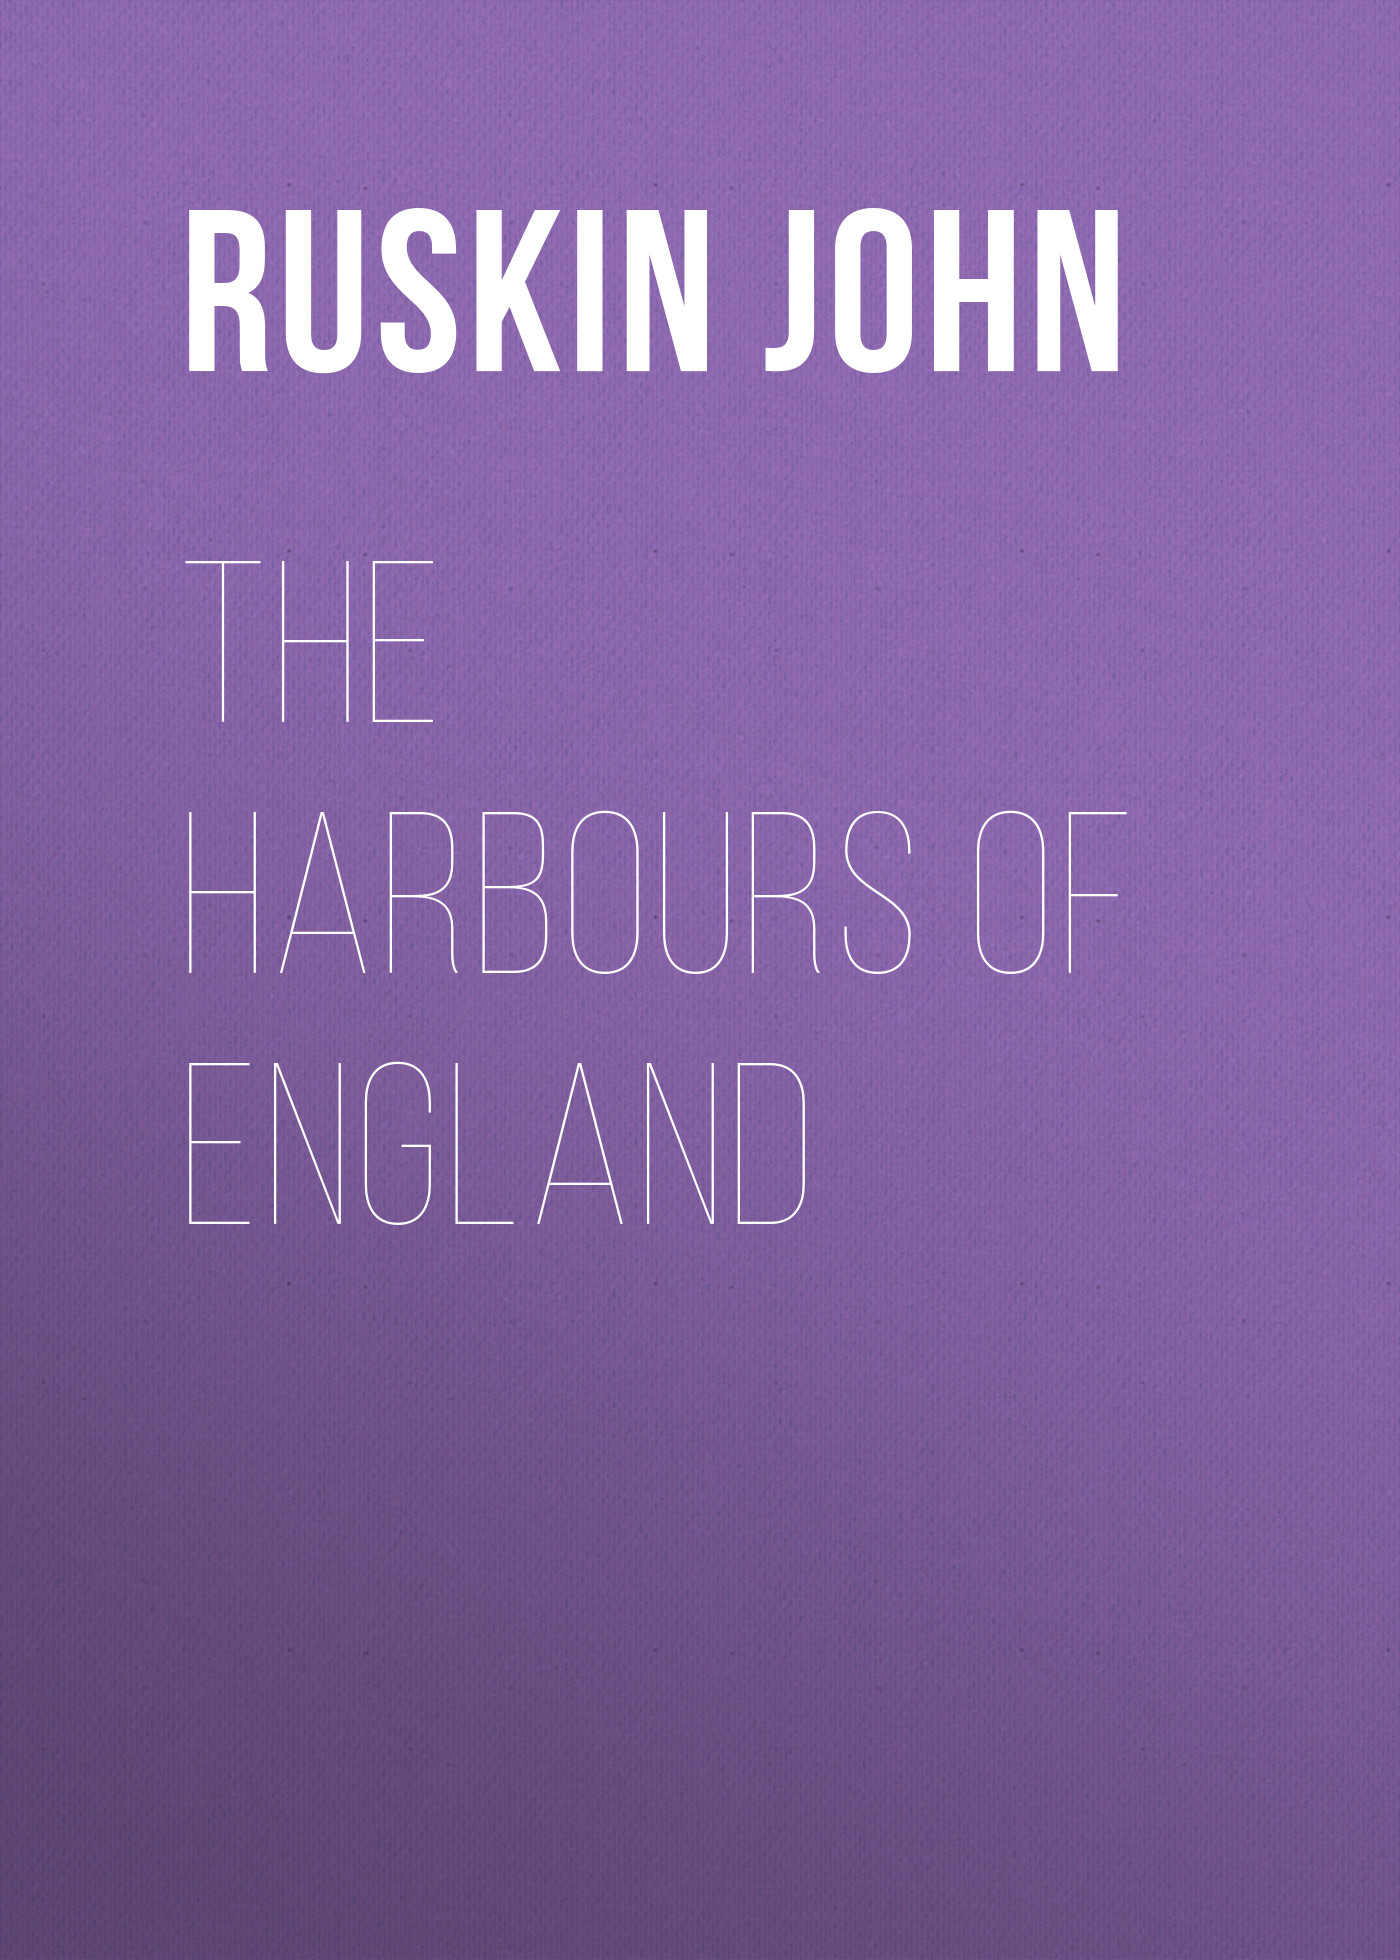 Ruskin John The Harbours of England ruskin john the poetry of architecture